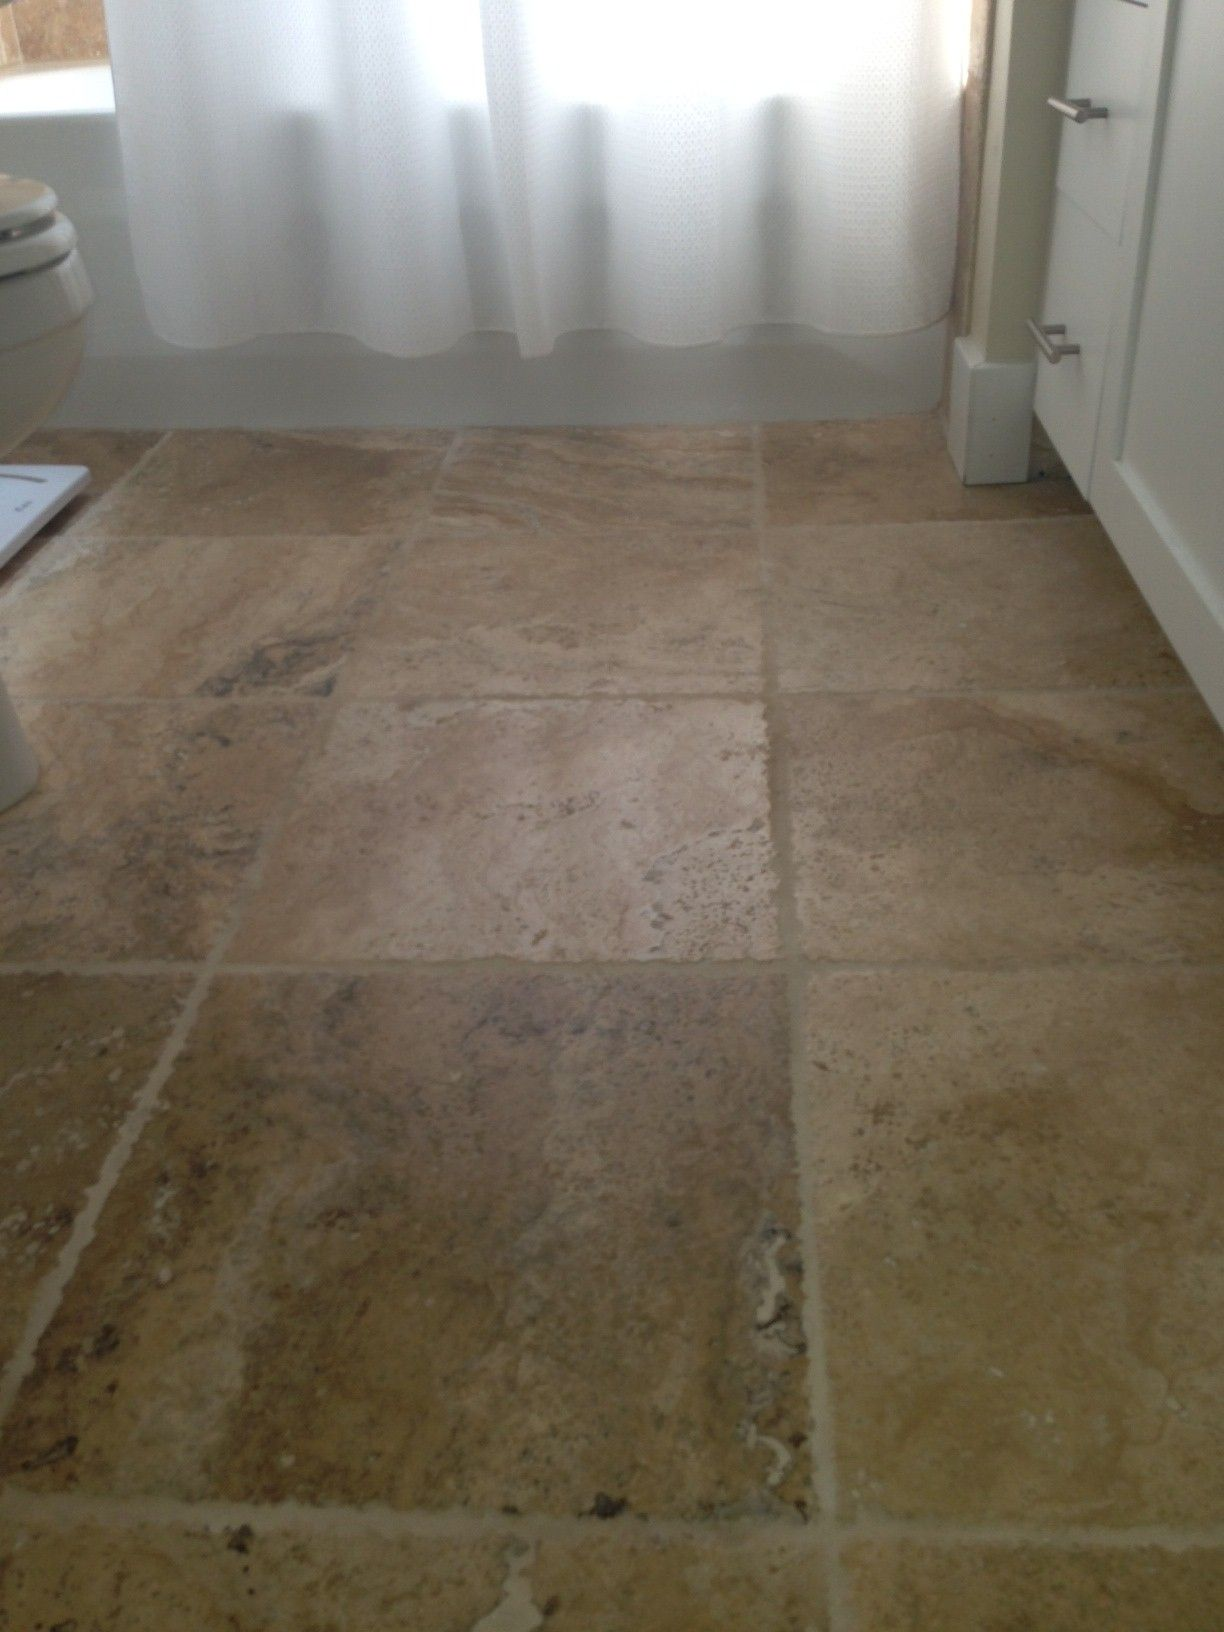 Bathroom Floor 16x16 Tile Tumbled Picasso Travertine Chiseled